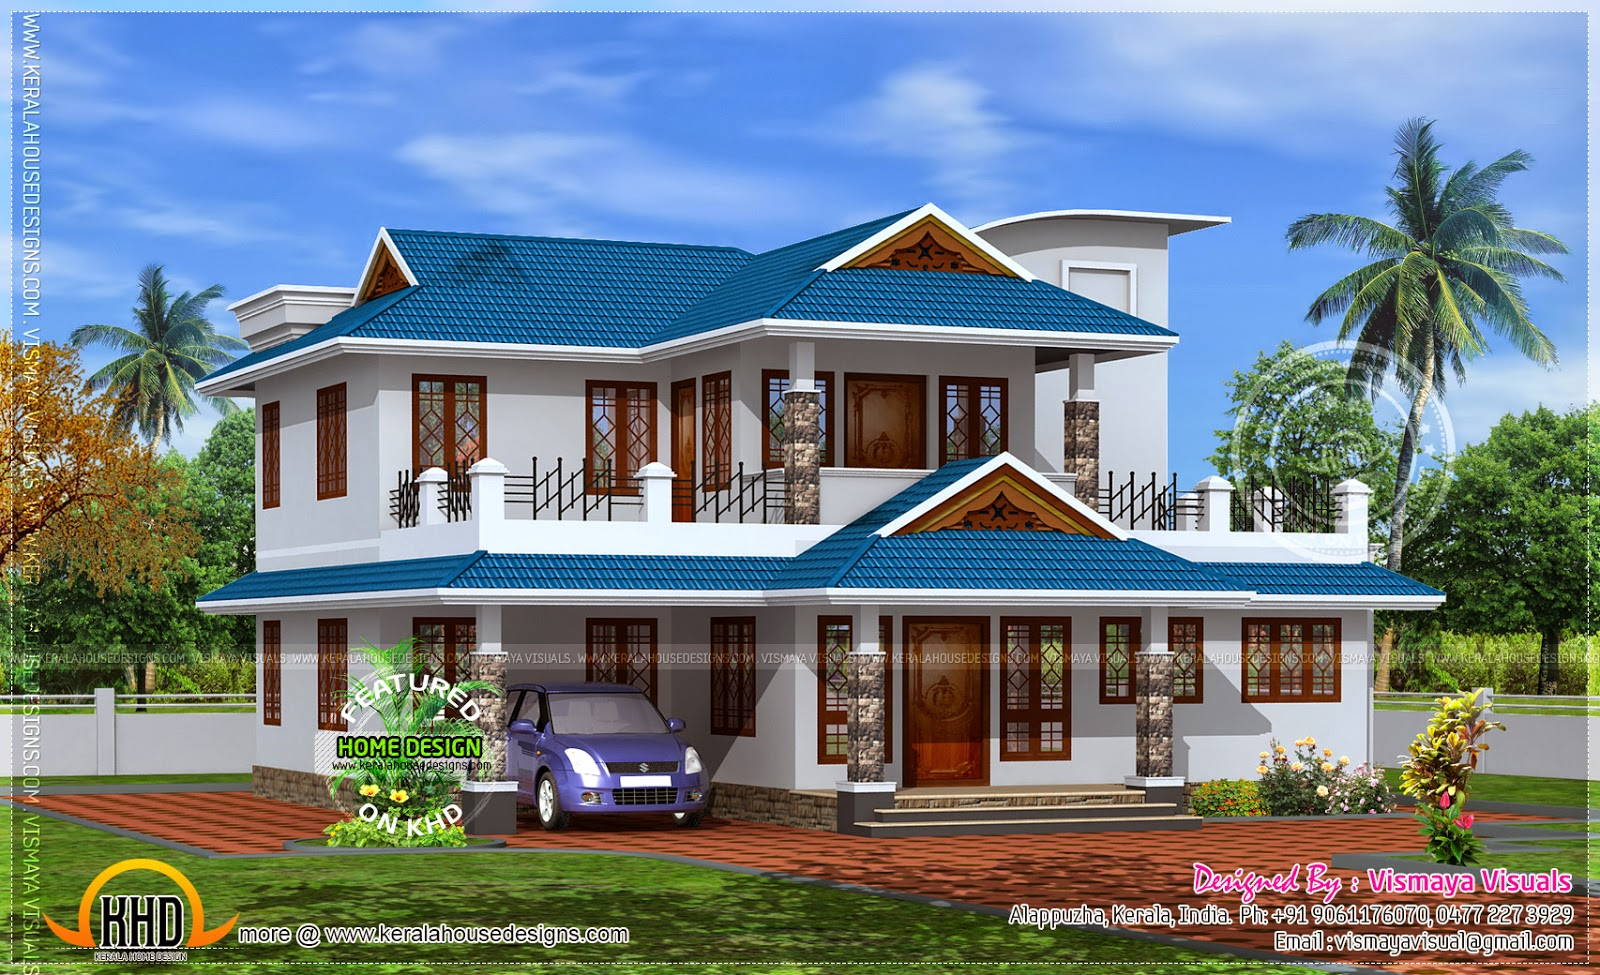 2350 sq feet home model in kerala kerala home design for Kerala house models and plans